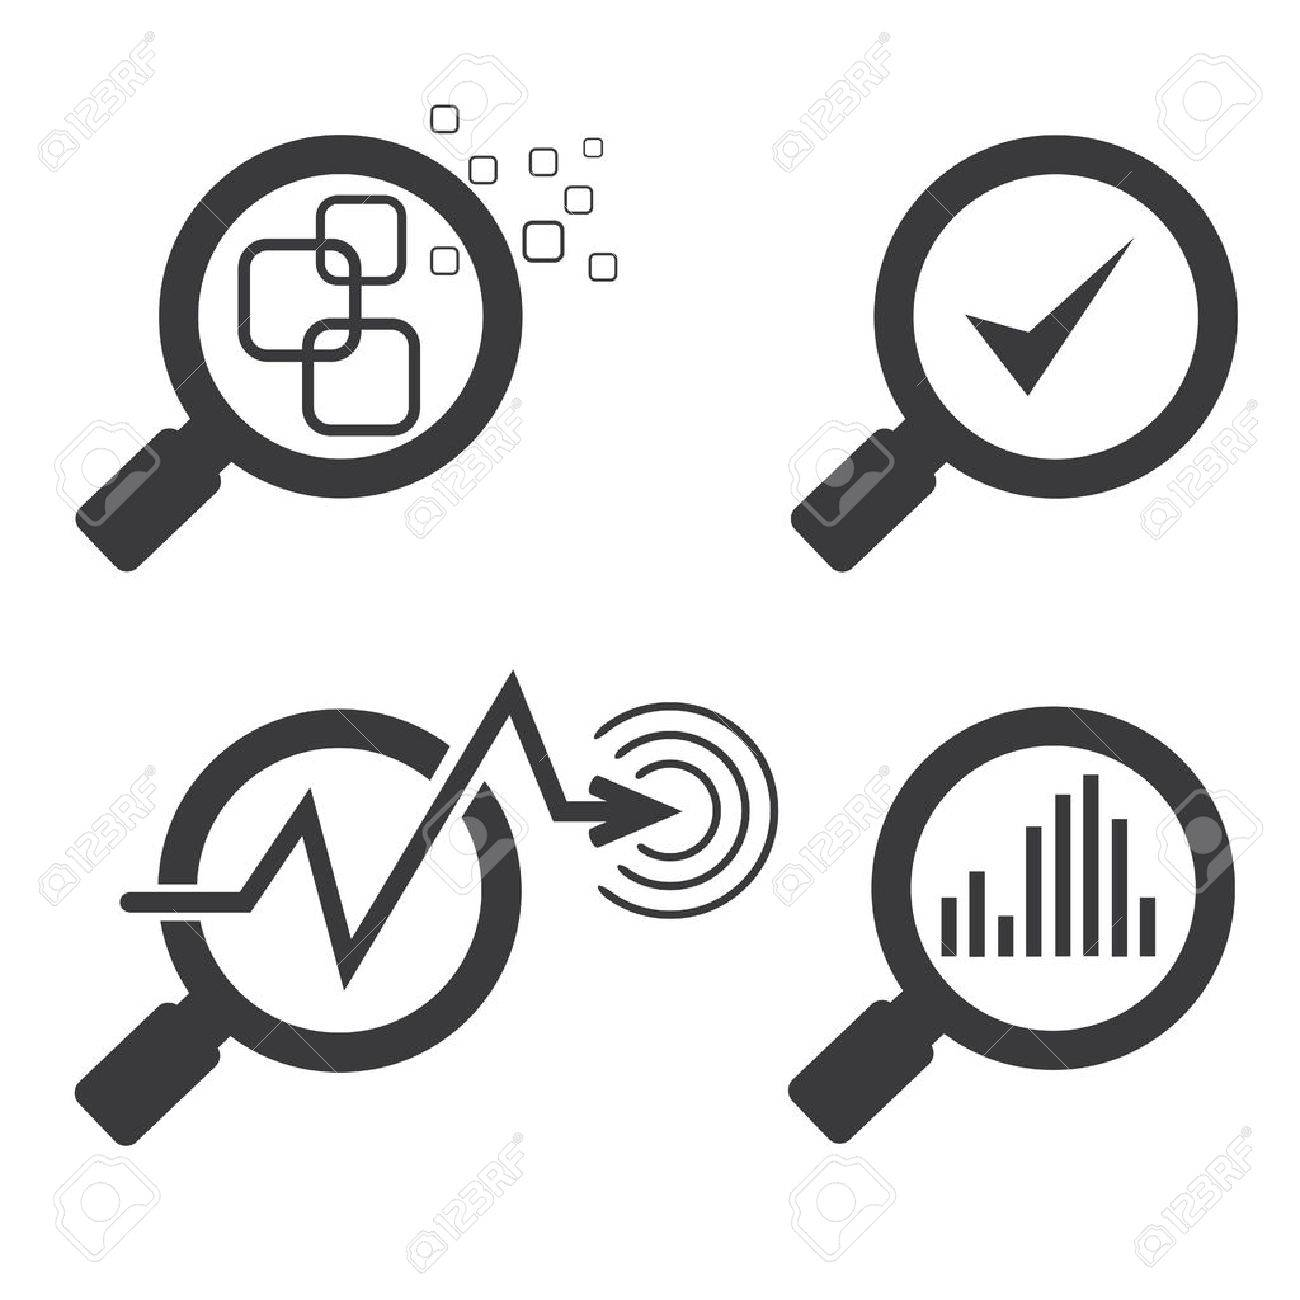 magnifier glass and chart graph icons - 53359753